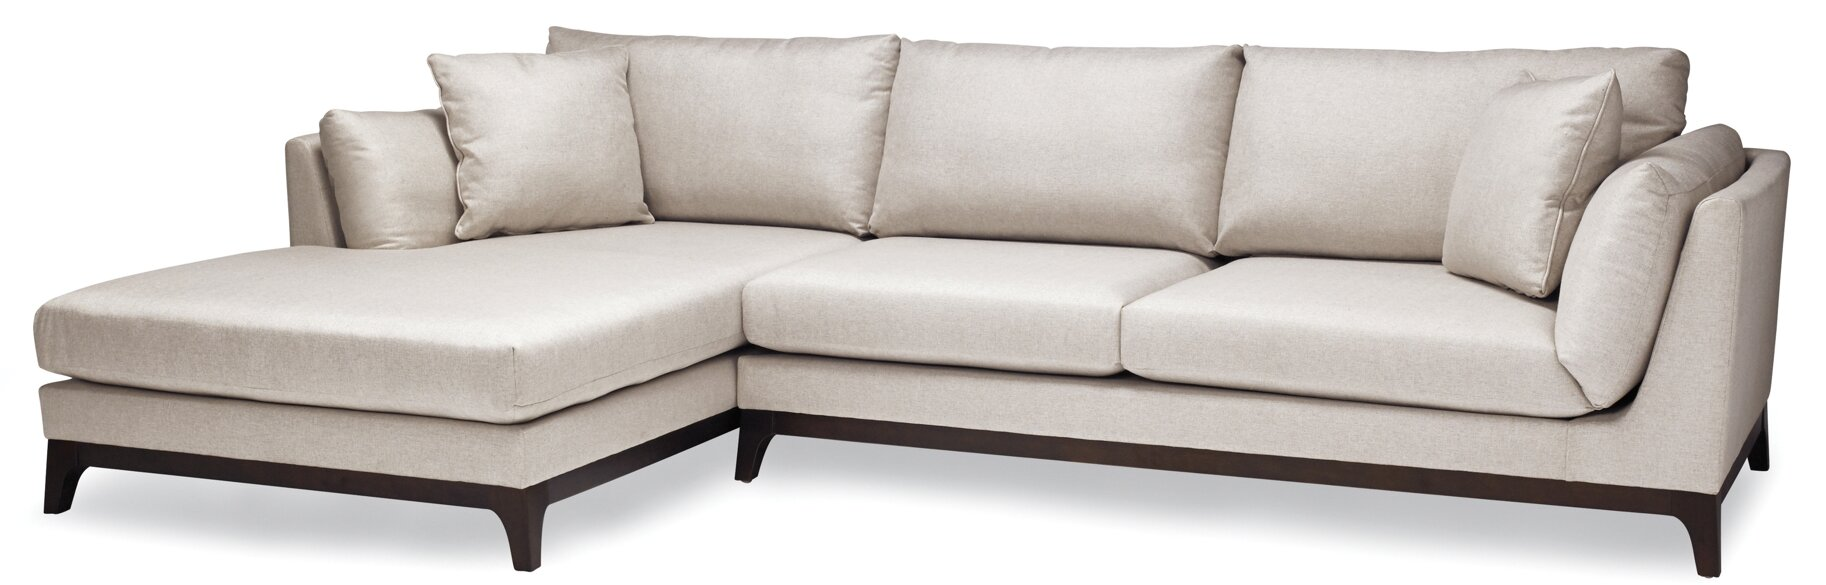 Sofas to Go Patty Sectional & Reviews